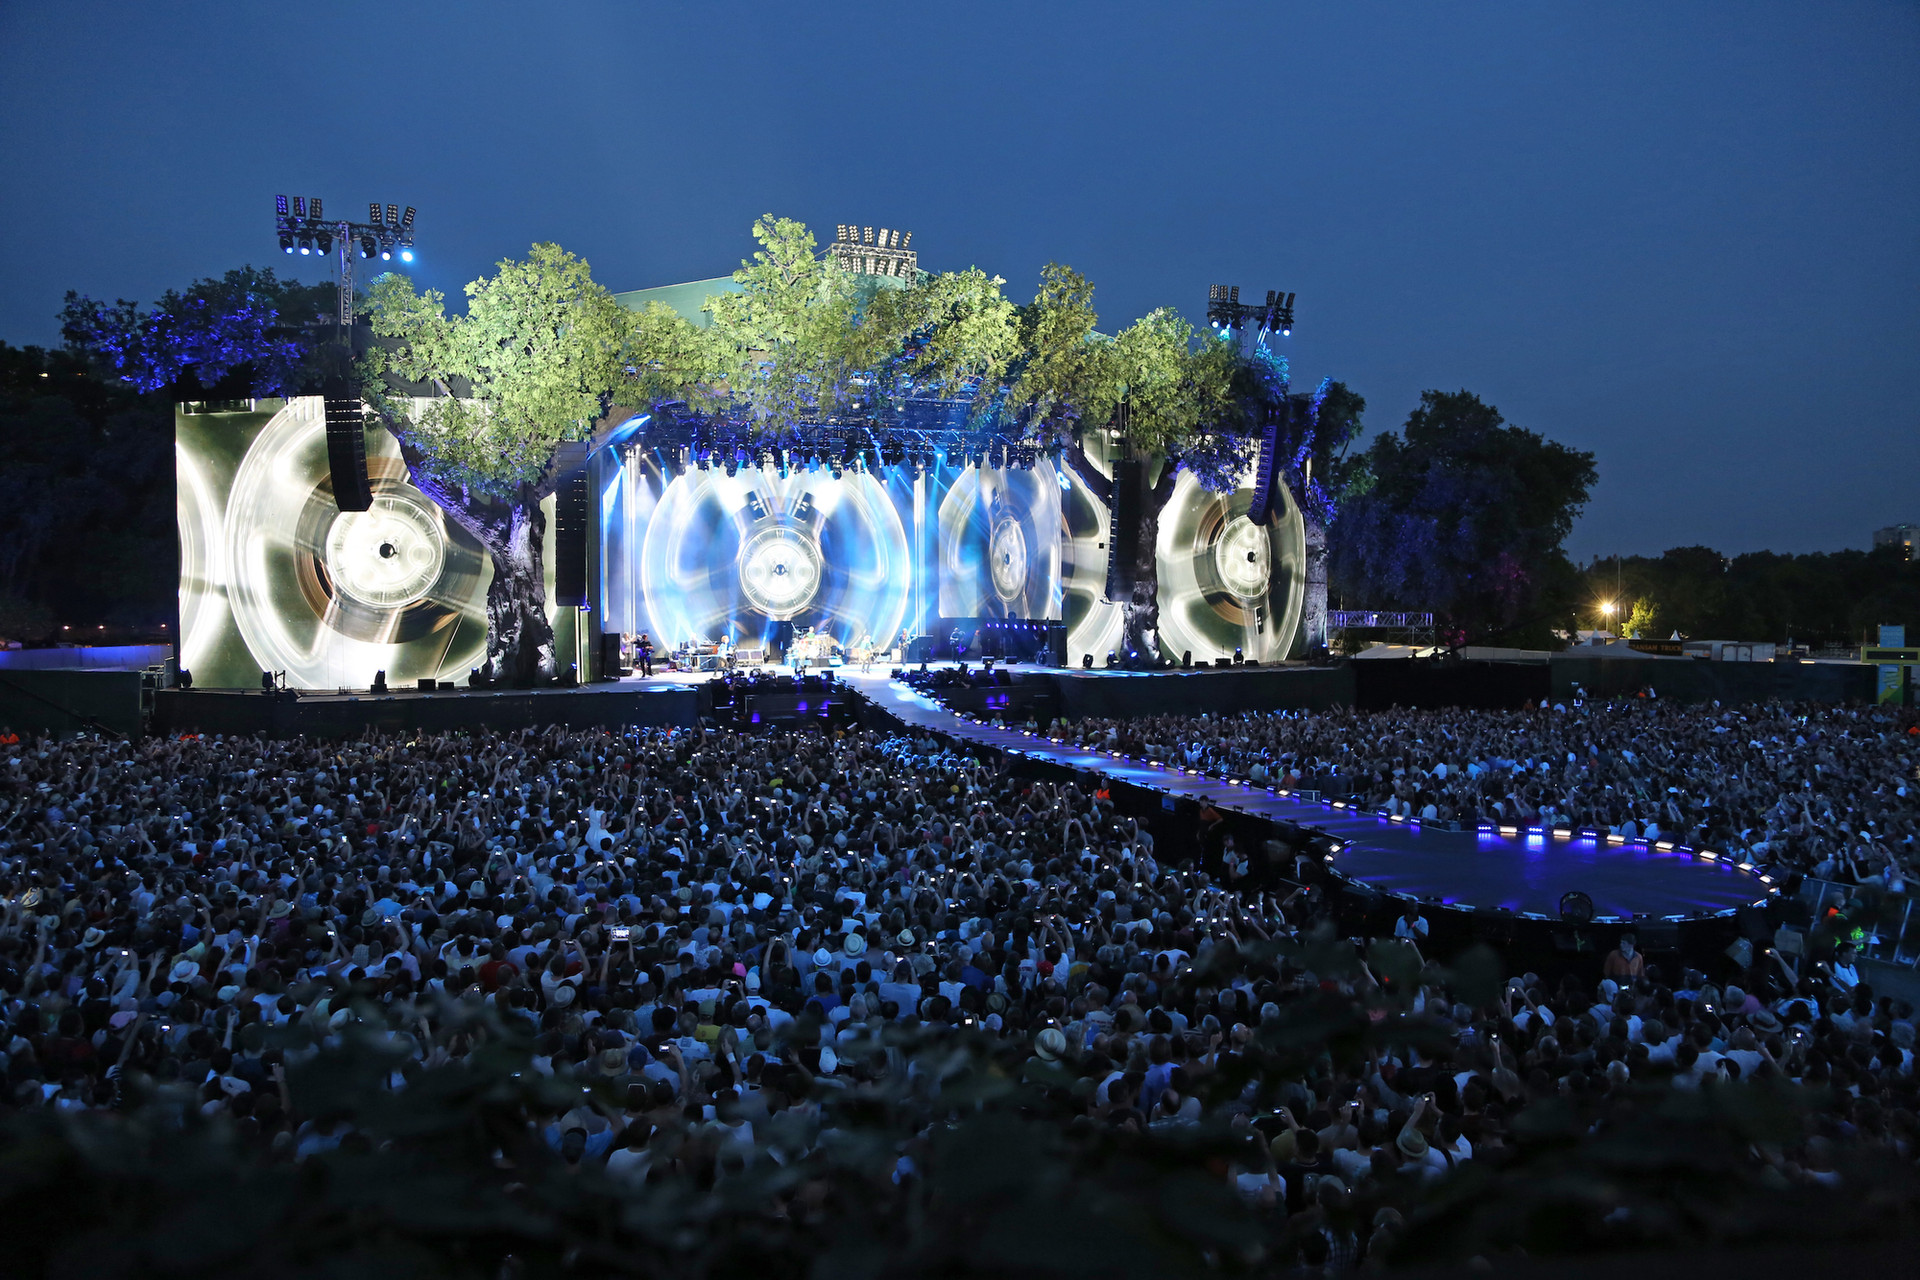 THE ROLLING STONES - HYDE PARK - 2013